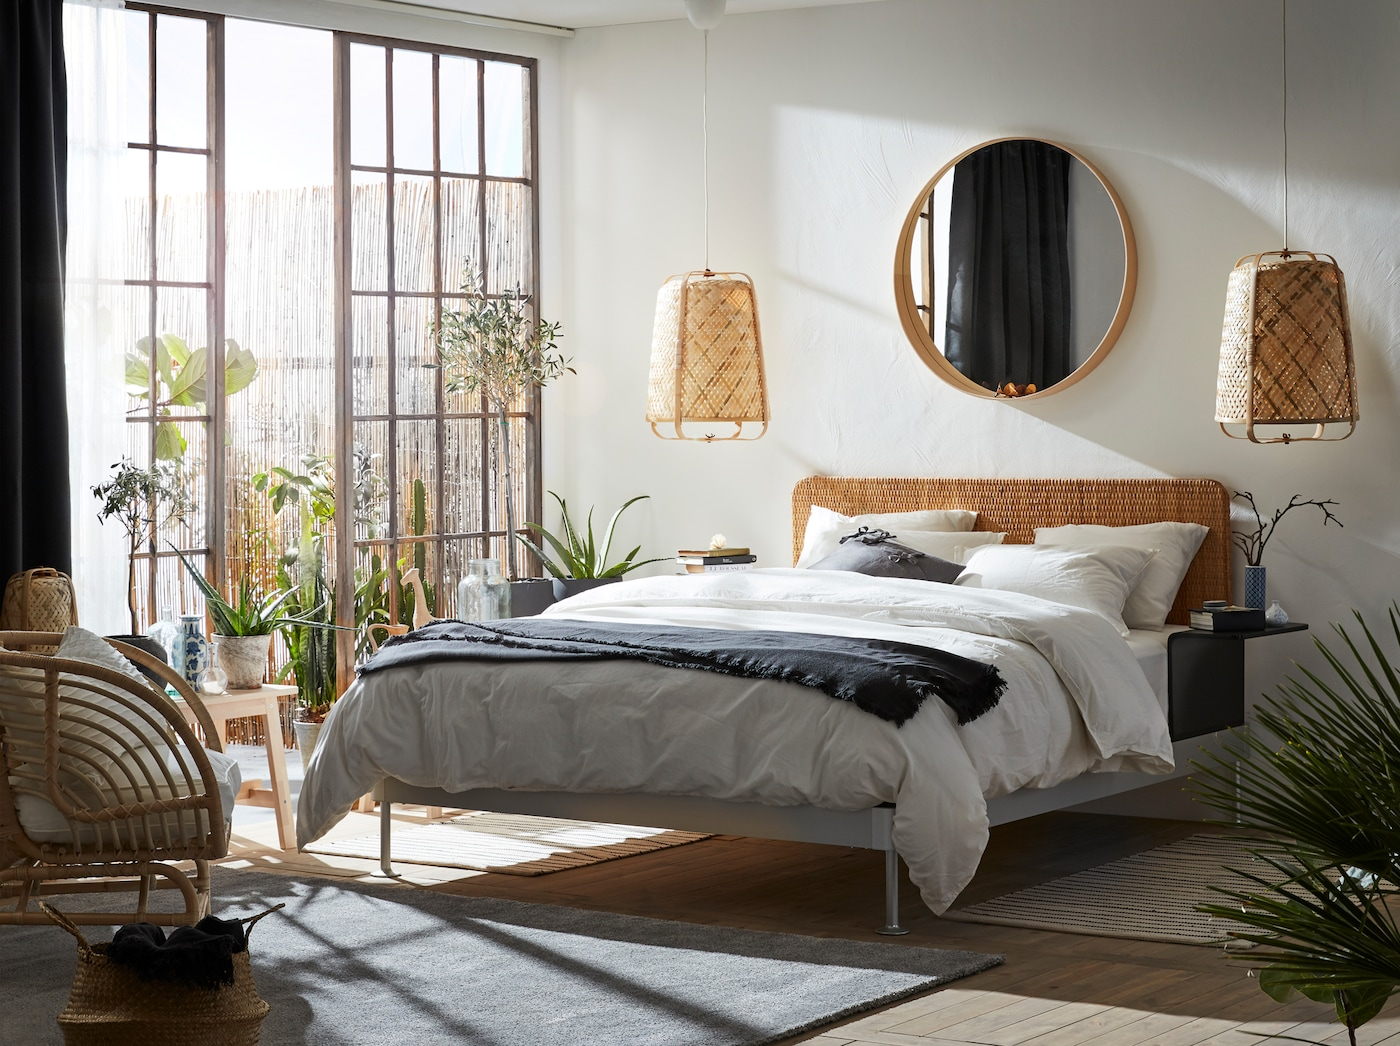 A bright bedroom with lots of natural materials, like rattan and bamboo. Big glass doors and an outdoor area next to the bed.